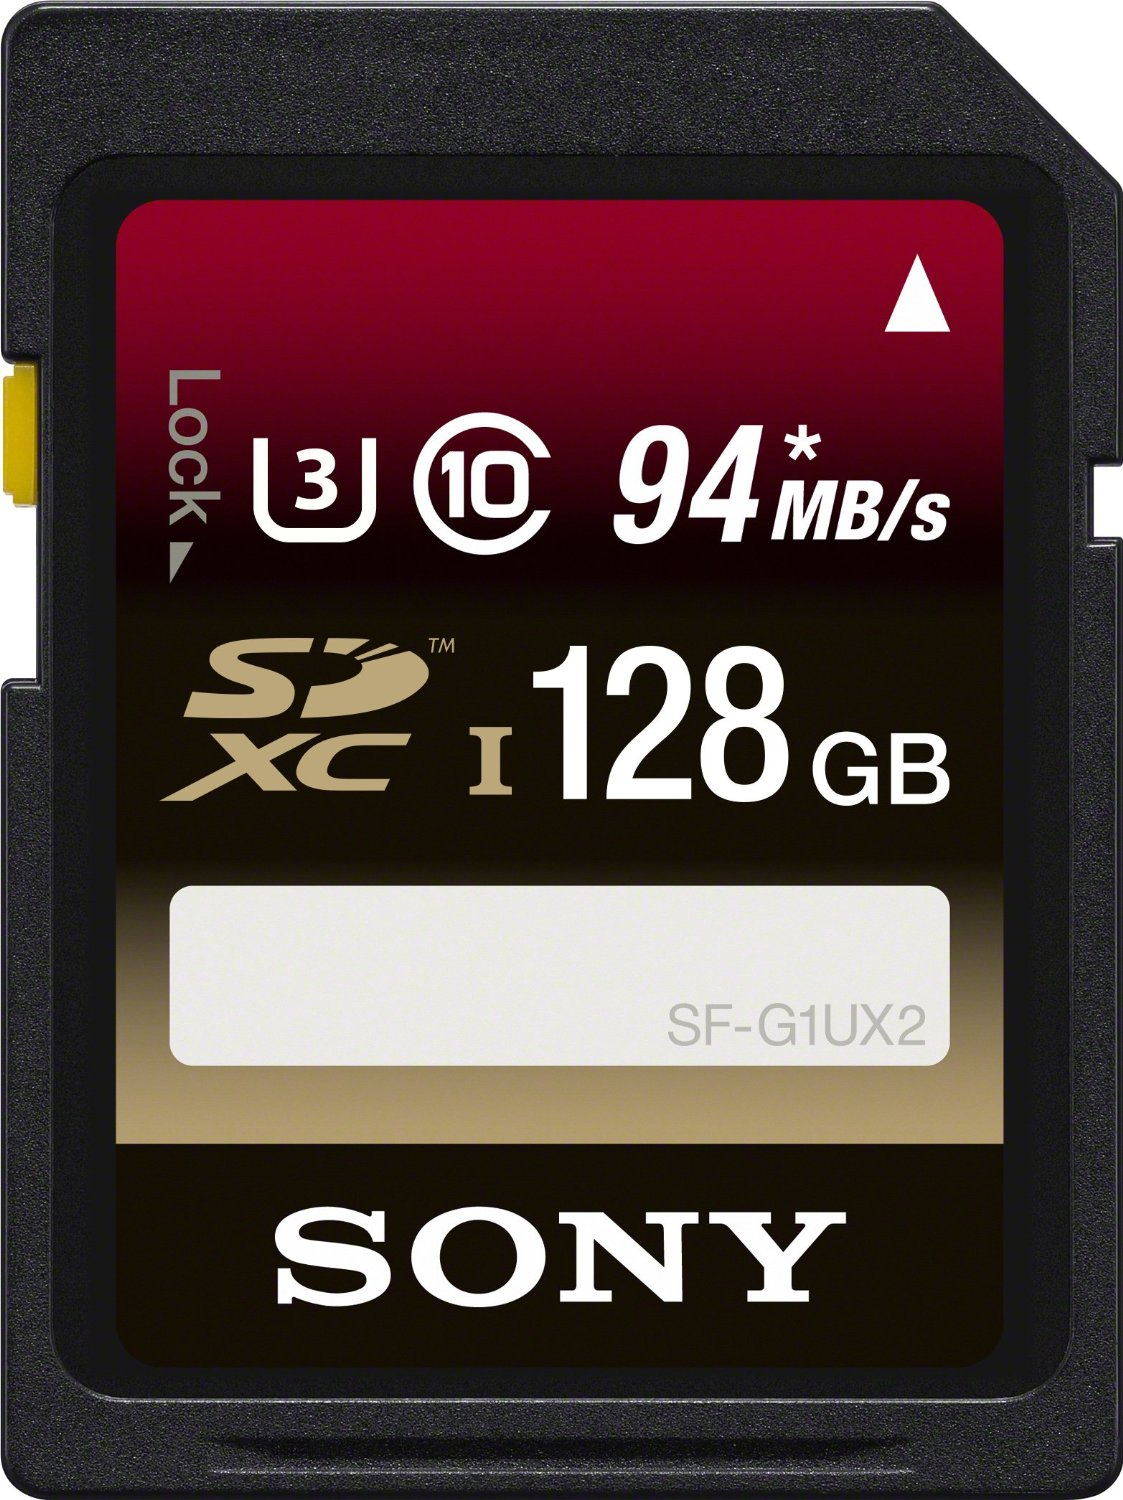 128GB Sony SDXC Card Just $69 Bucks